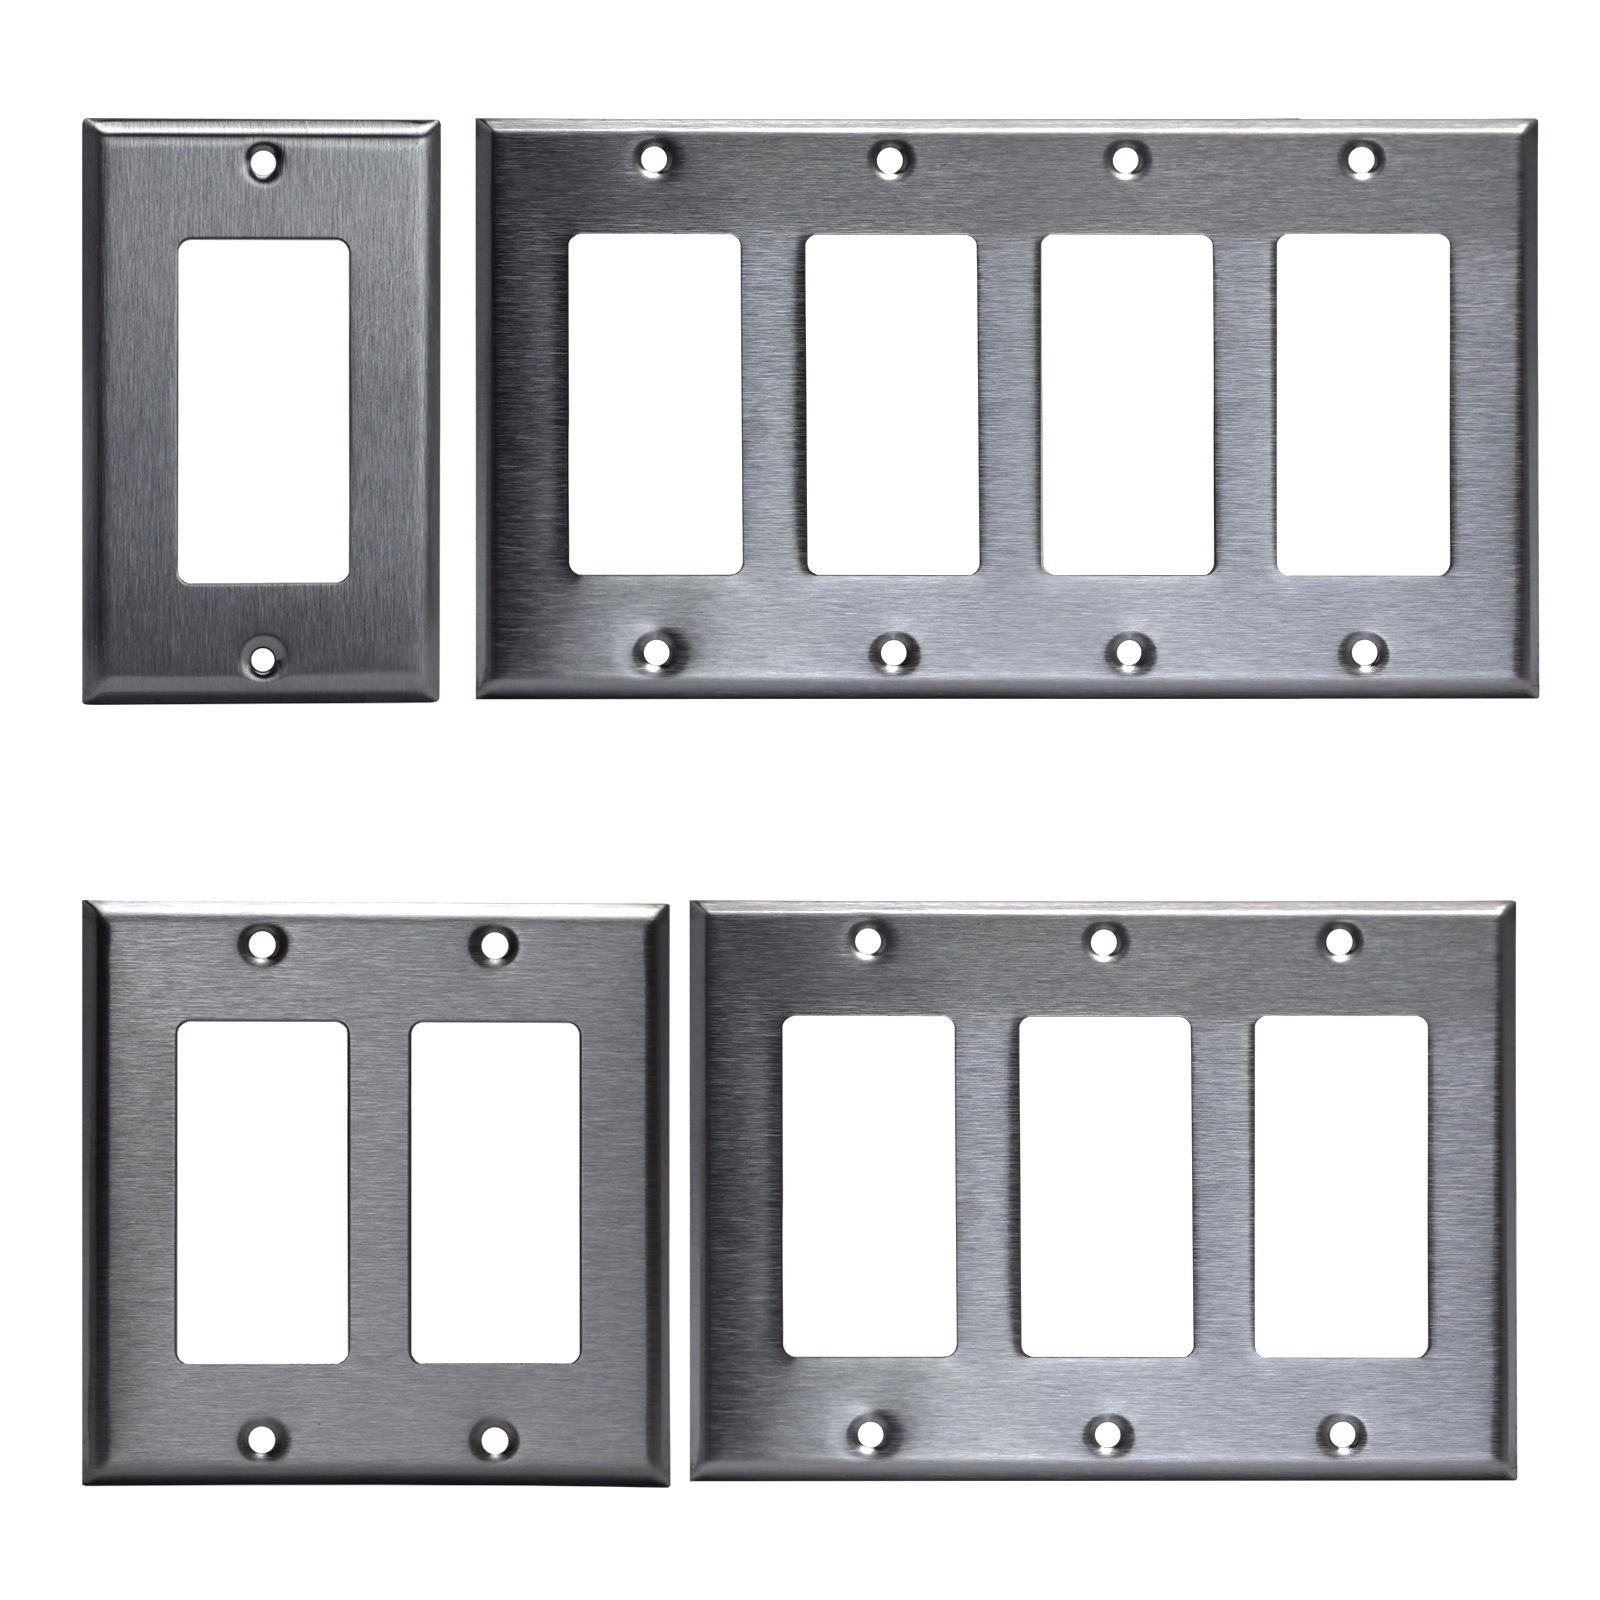 Brushed Stainless Steel Outlet Cover Rocker Switch Wall Plates Decorator Metal (4 Gang)